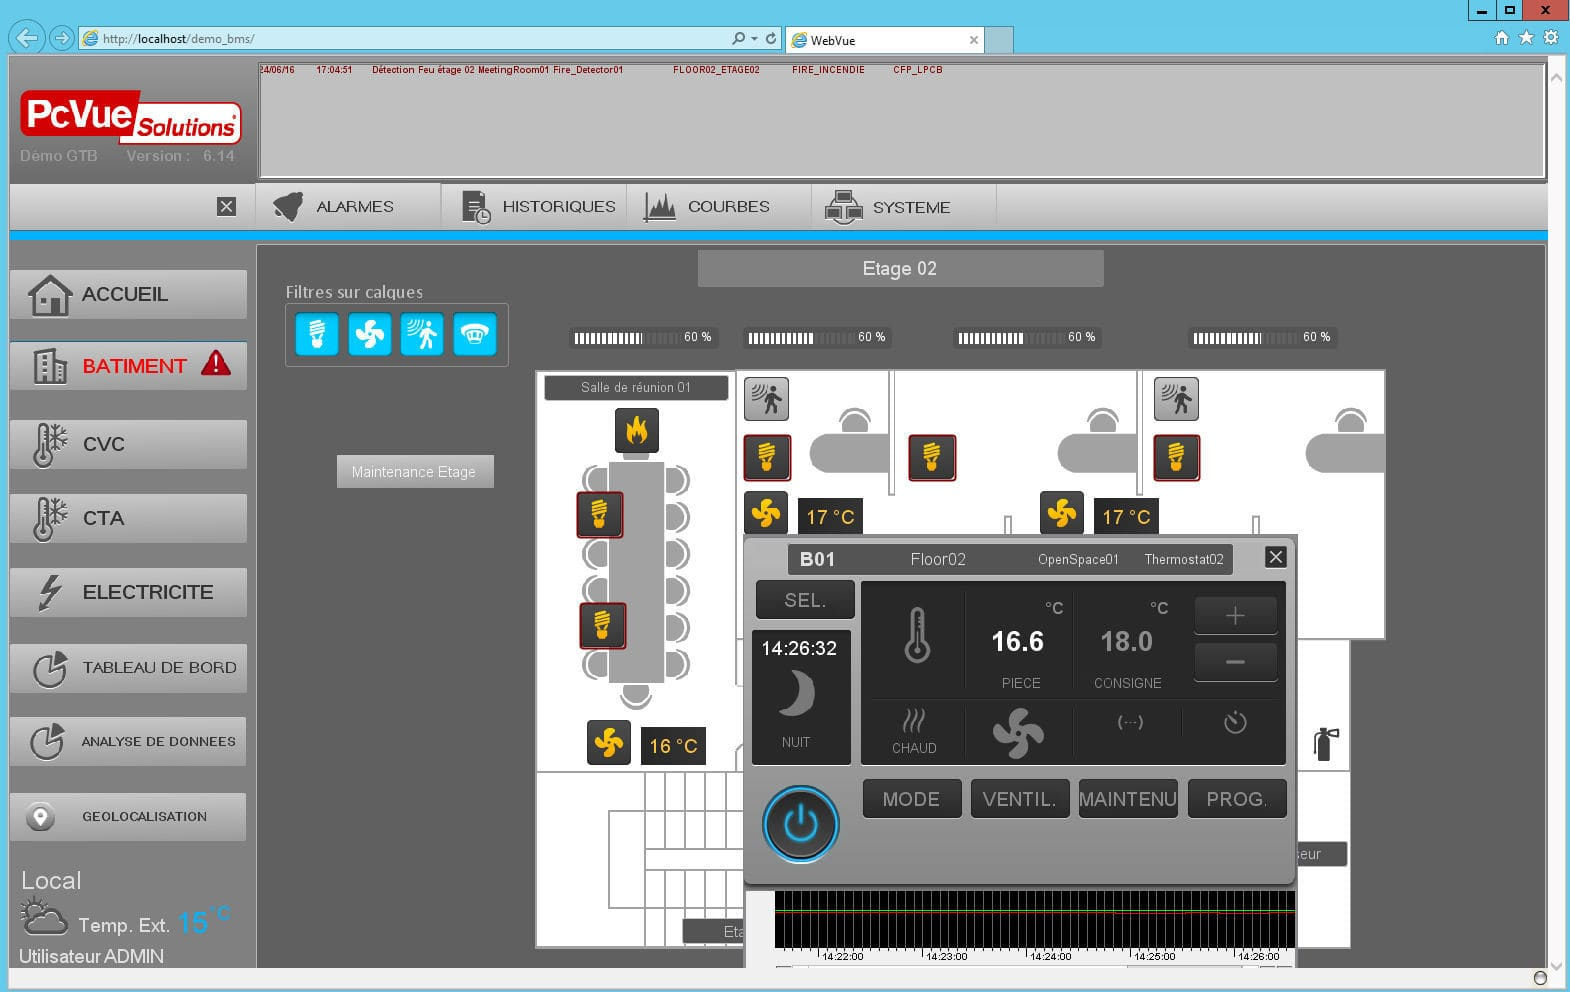 HMI software / SCADA / real-time / web browser WebVue ARC Informatique